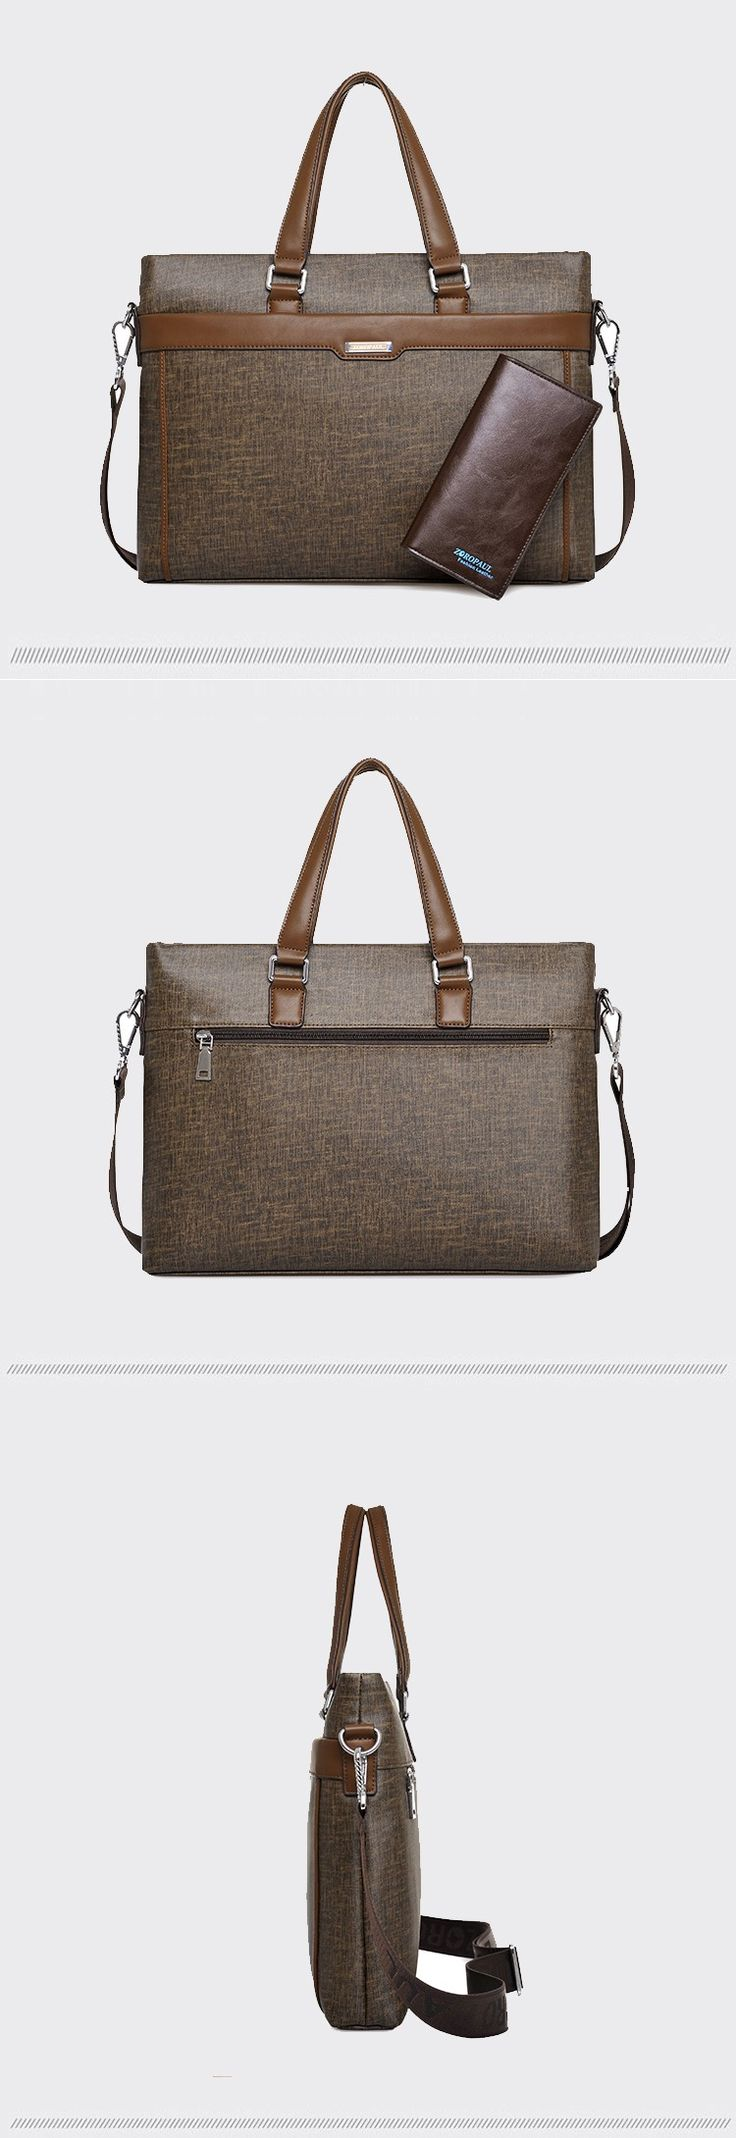 Men's Fashion  PU leather Briefcase + Wallet - Black,Blue,Brown  Mens For Men Business Organization modern Purse Design ideas storage bag Aesthetic luxury Essentials Design Style outfit Gift ideas For him office Work products shop store websites links for sale online shopping buy AuhaShop.com